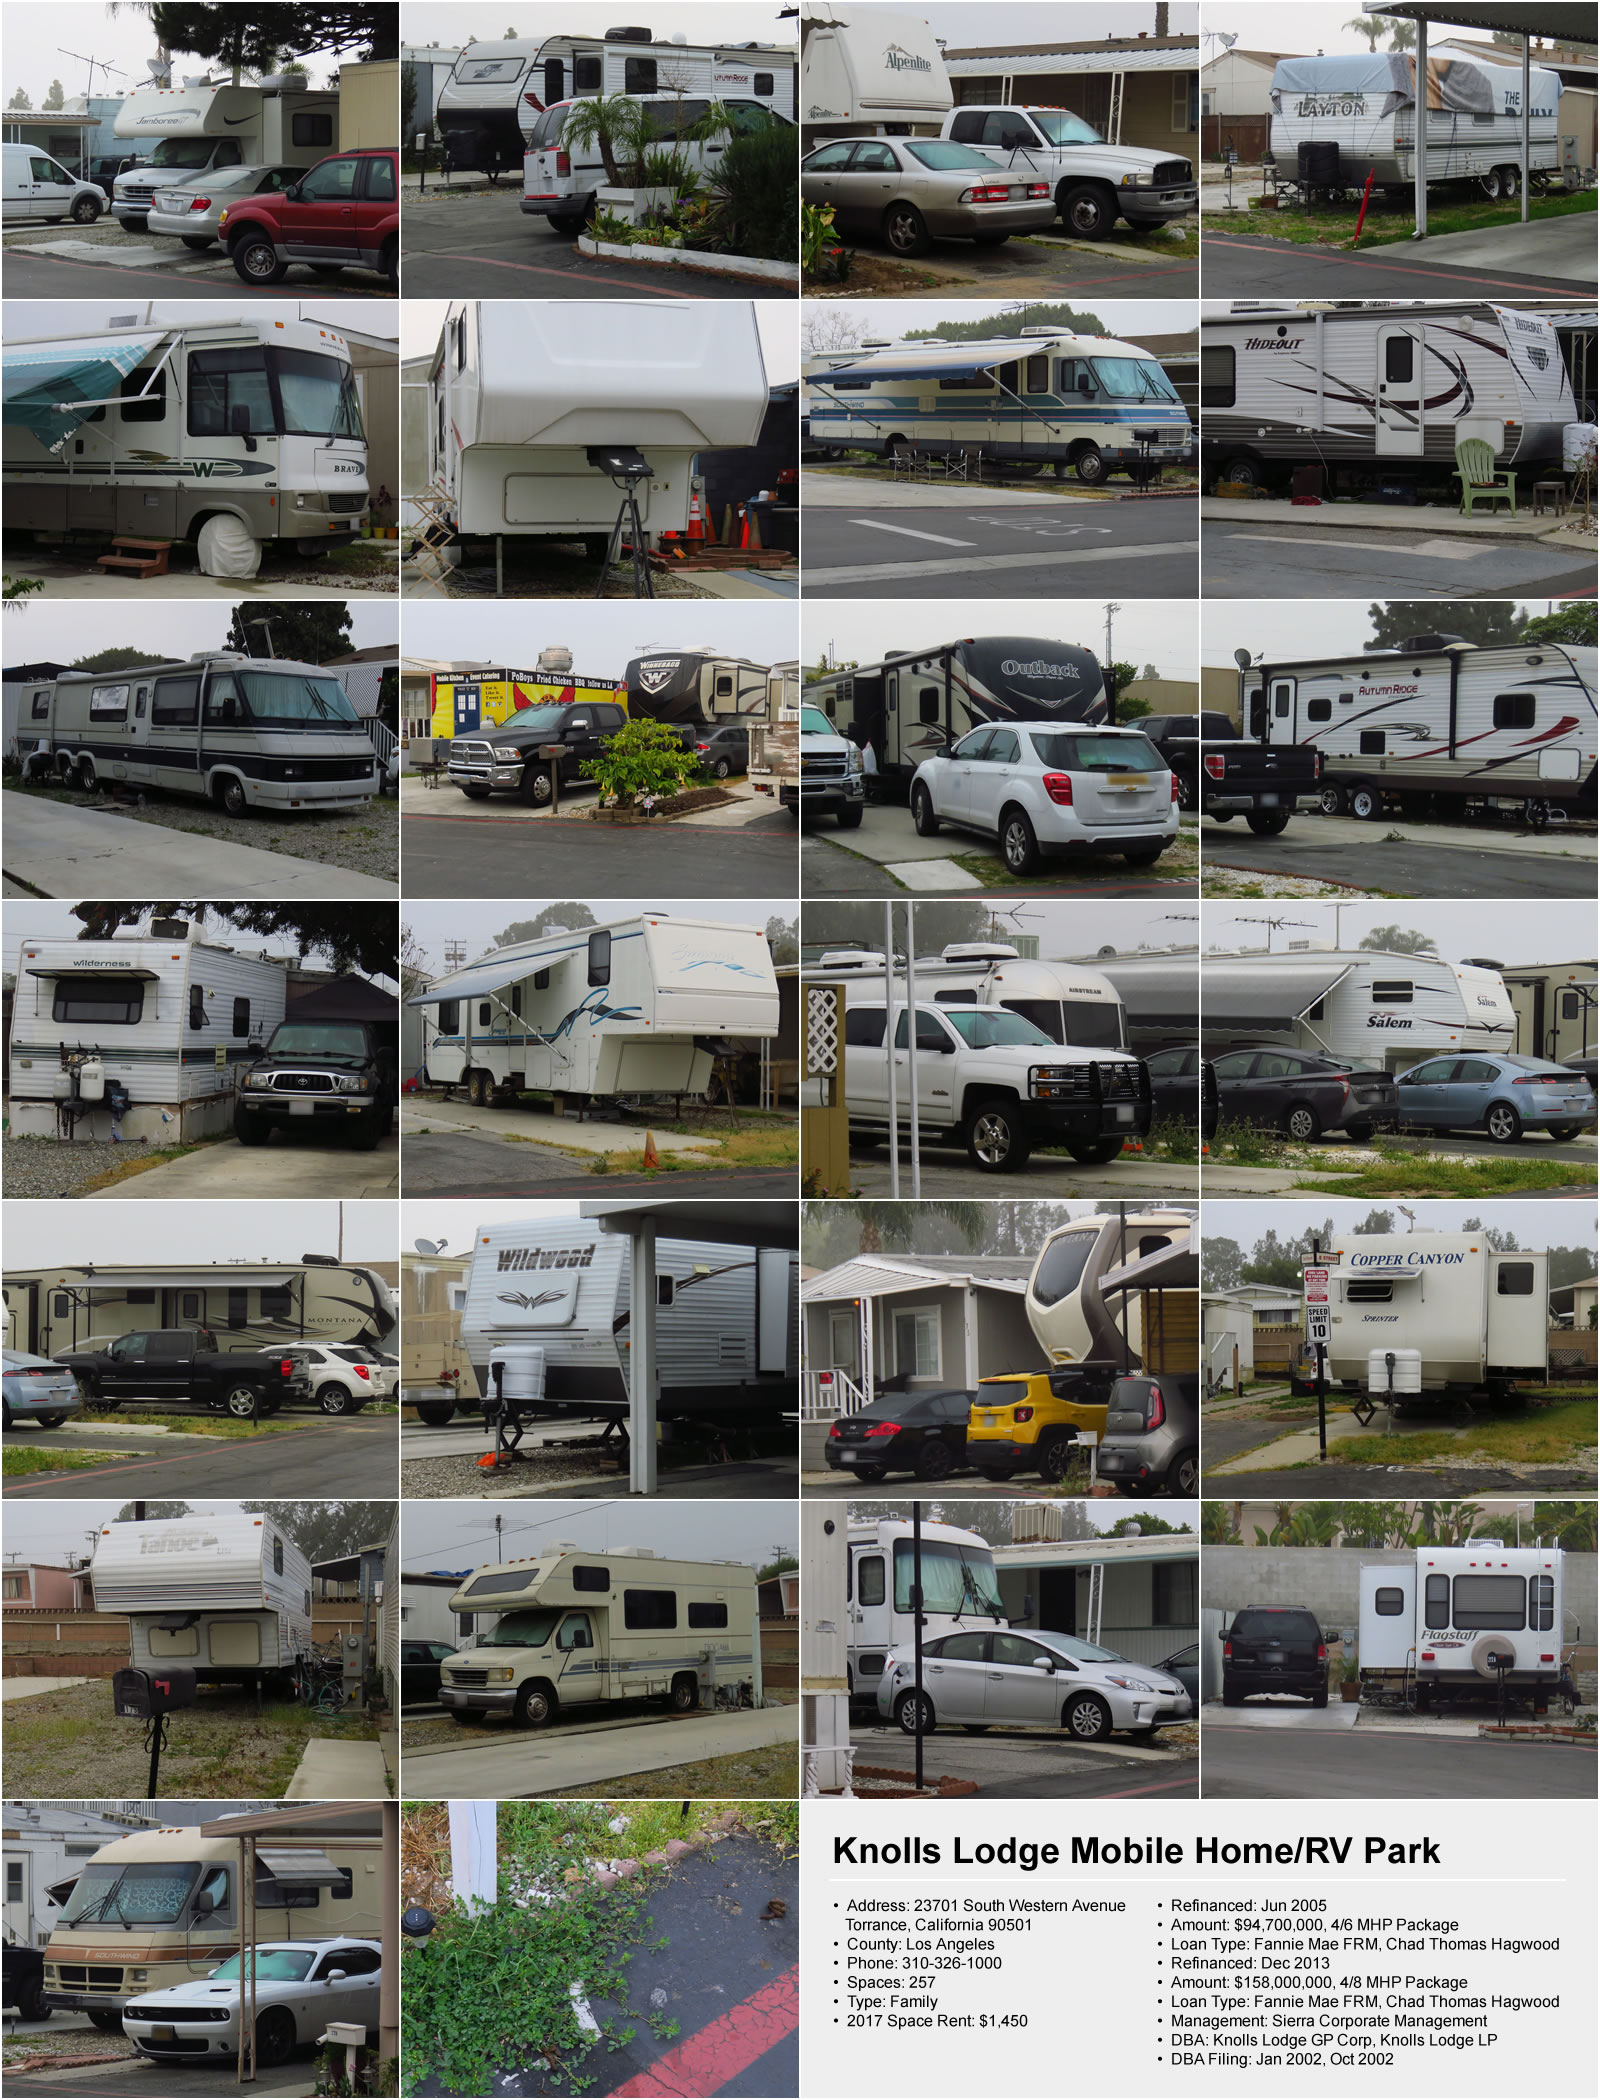 Knolls Lodge Mobile Home RV Park